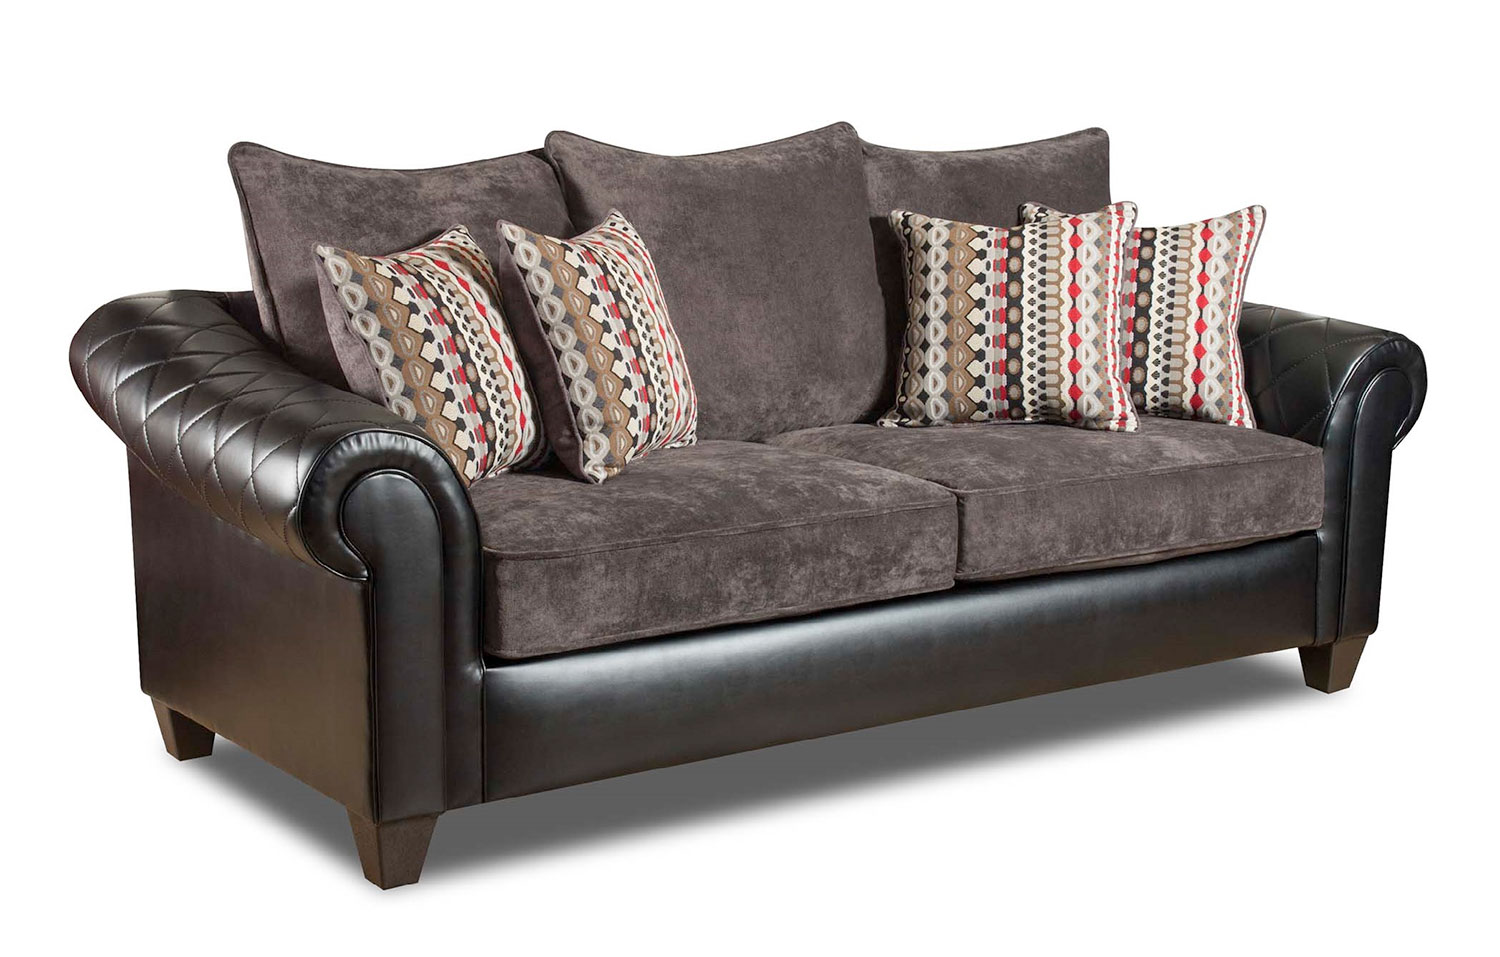 Chelsea Home Afton Sofa Chf 182753 3030 1510 S Gbta At